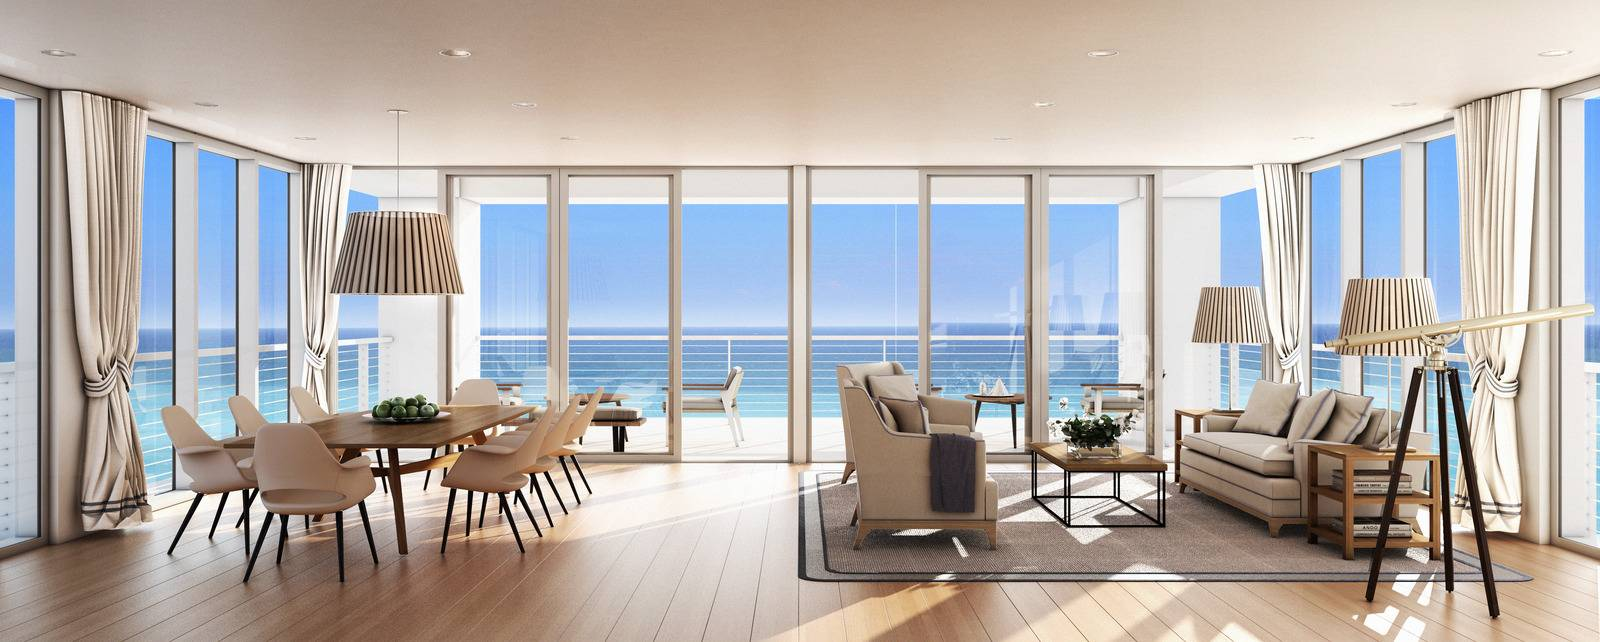 Beach house 8 partners with luxury attach haute living for Beach glass interior designs